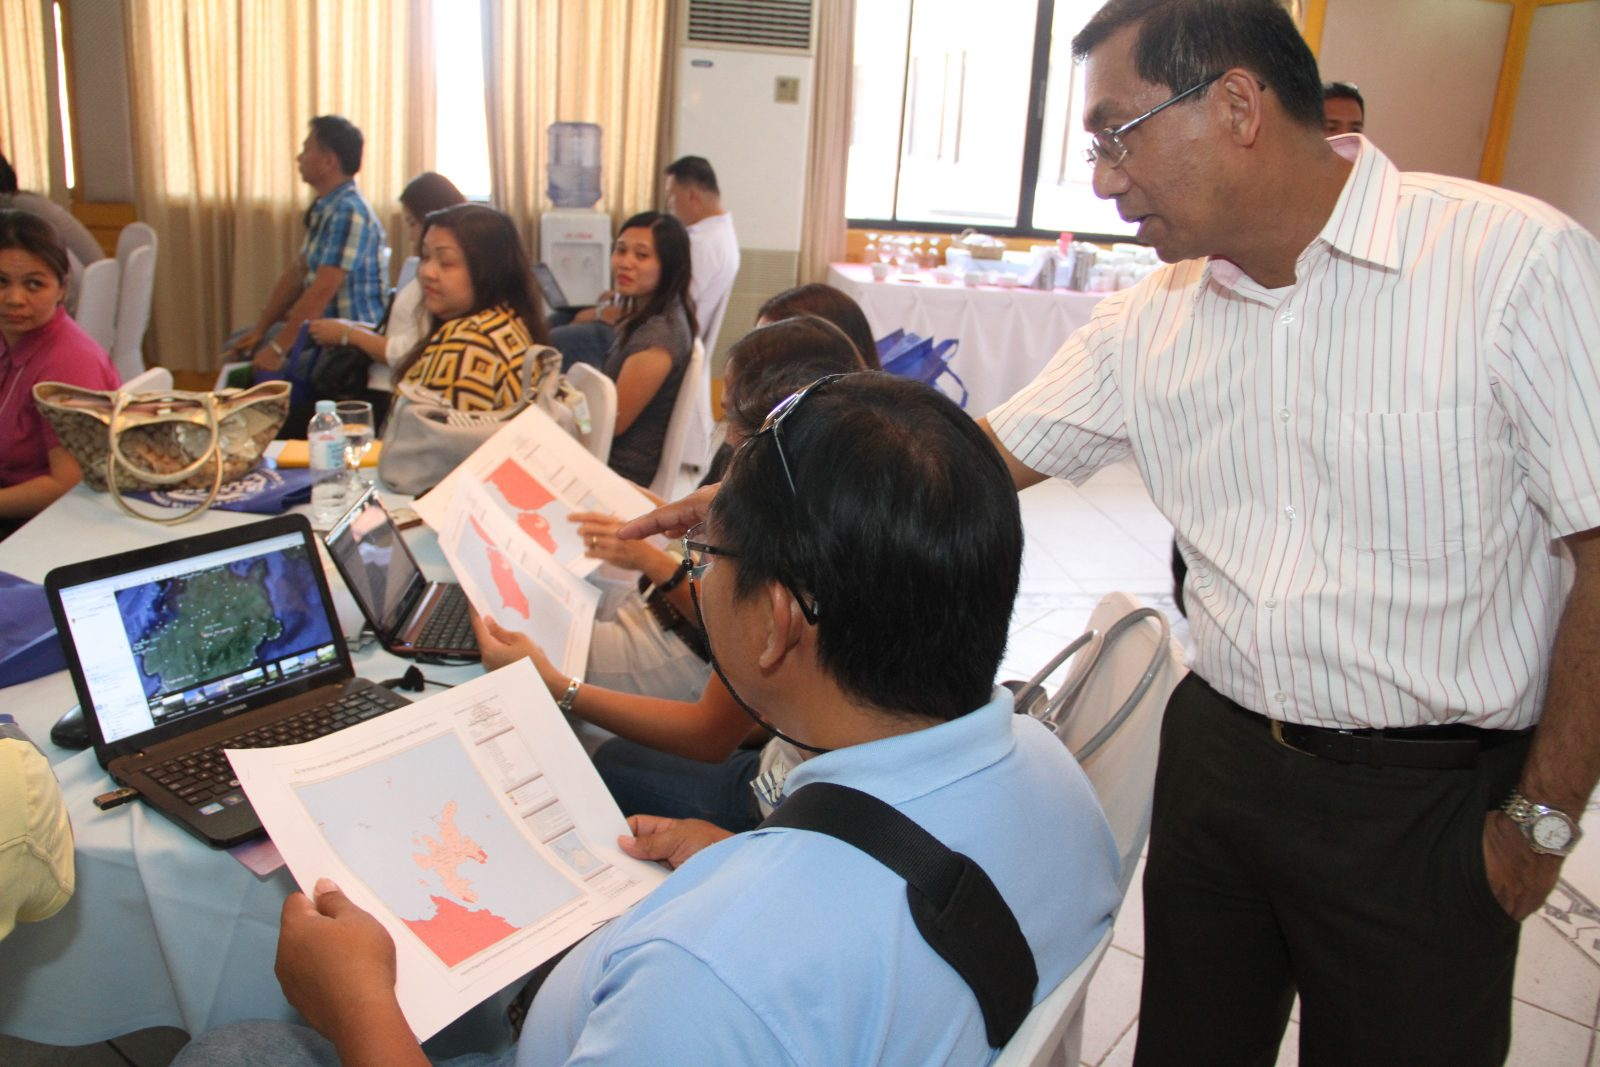 PHIVOLCS Director Renato U. Solidum and PAGASA Administrator Vicente Malano guide INAP participants from Bohol as they work on one of the hands-on activities.